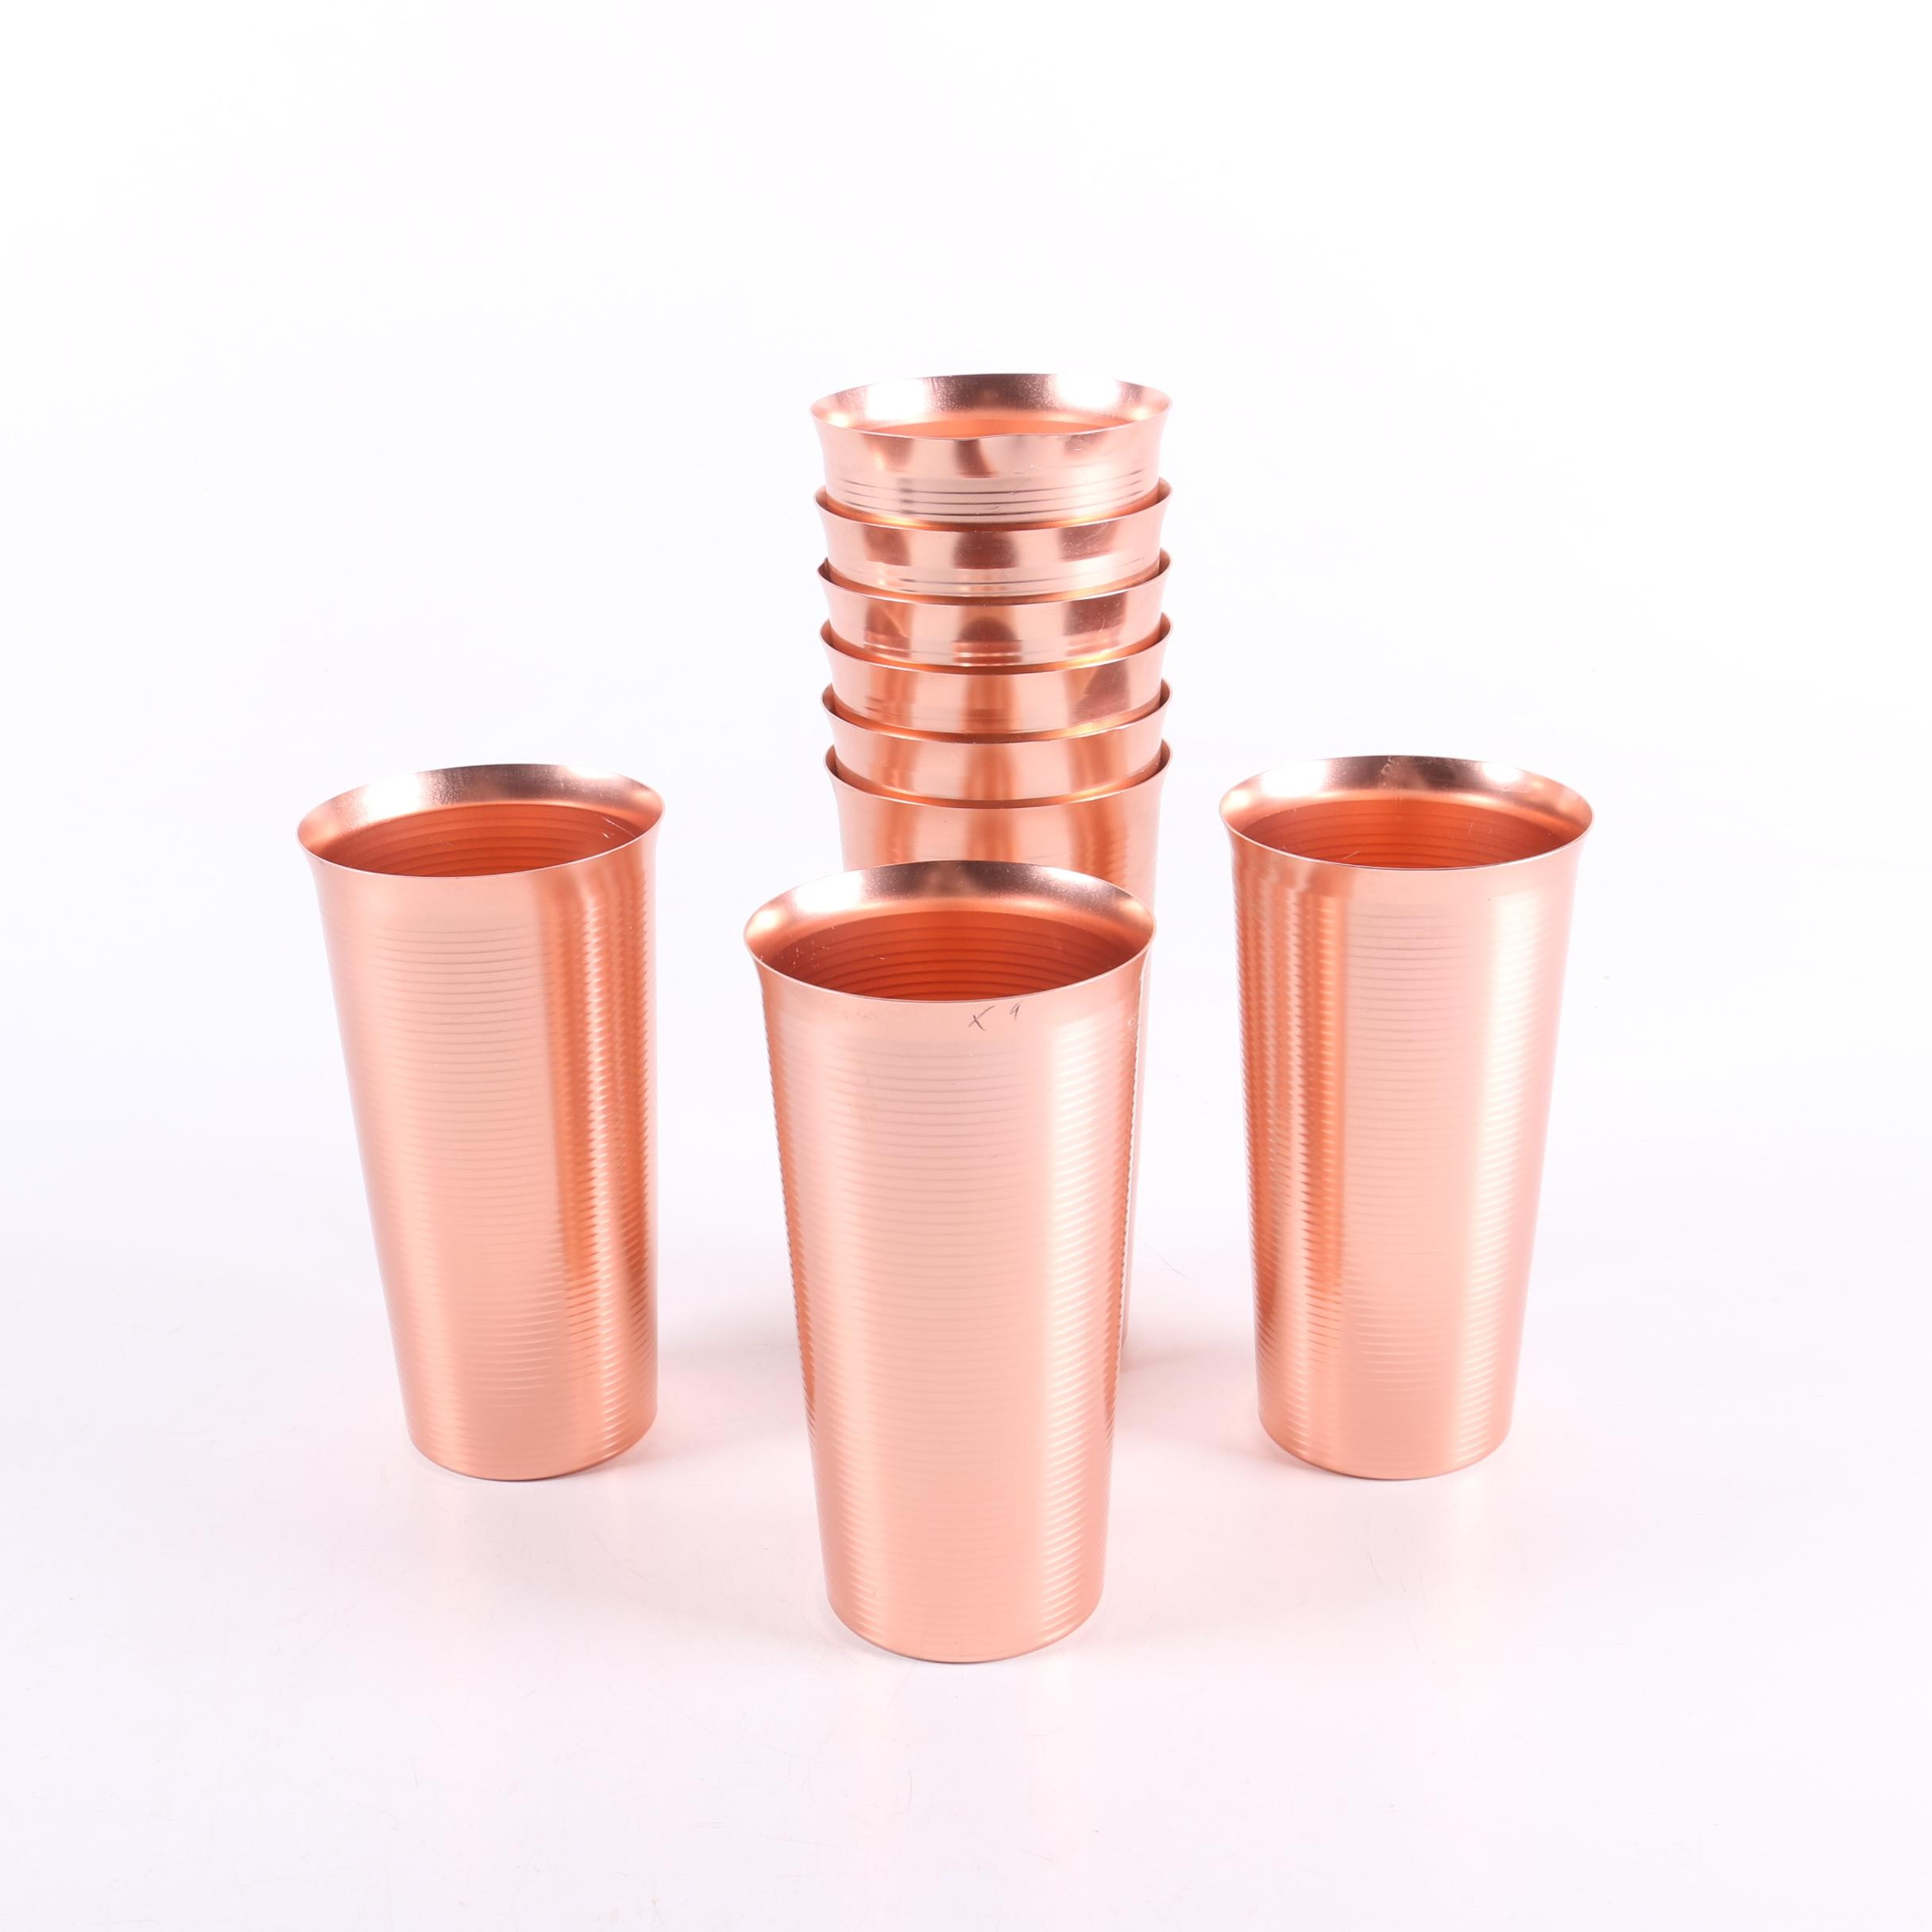 Vintage West Bend Copper Colored Aluminum Tumblers